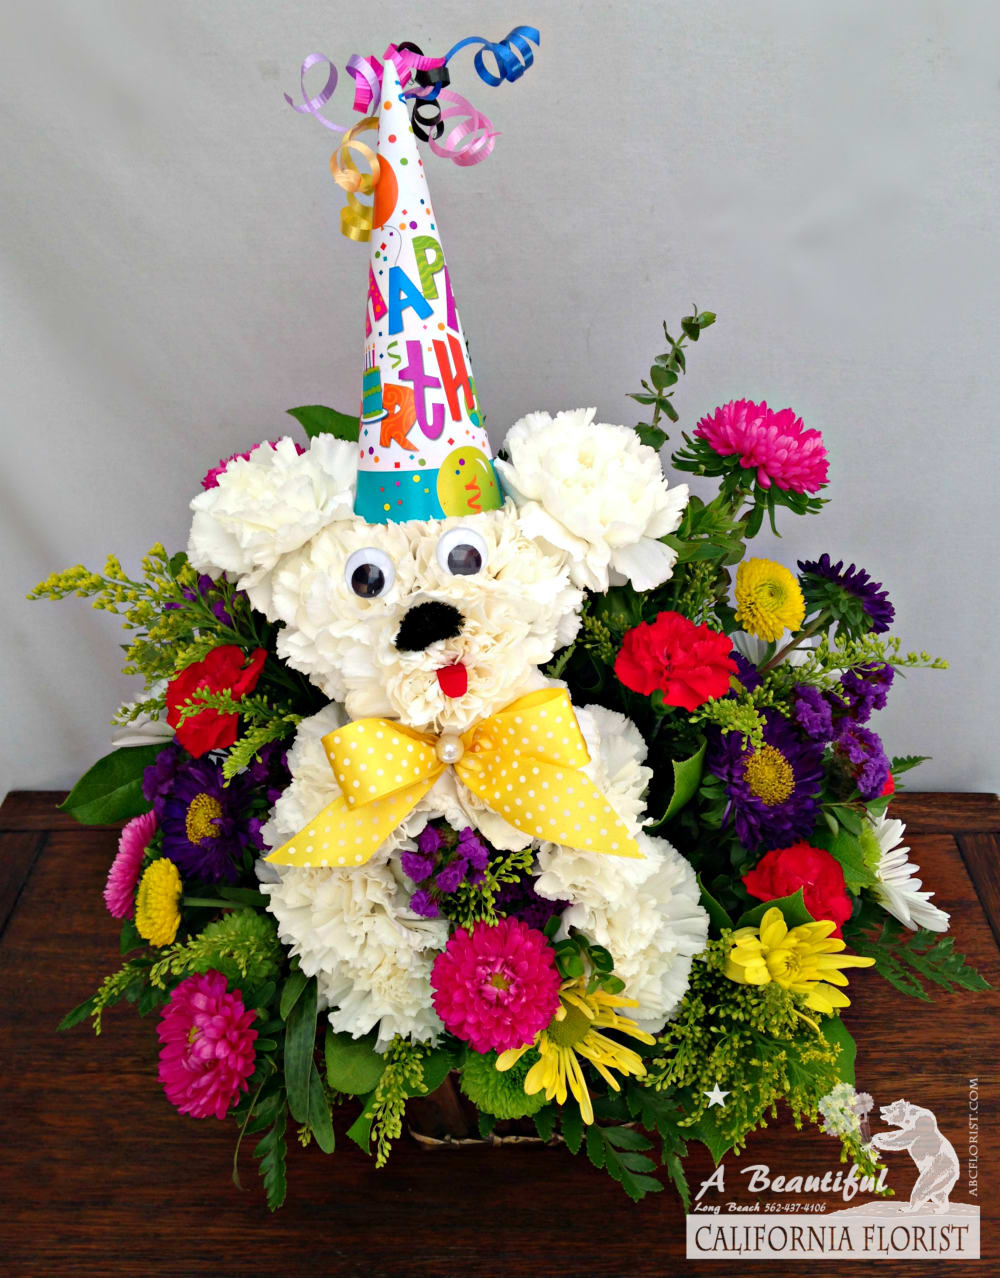 Woof woof Happy Birthday! - Birthday Flower Arrangements from ABC Florist  Long Beach in Long Beach, CA | A Beautiful California Florist